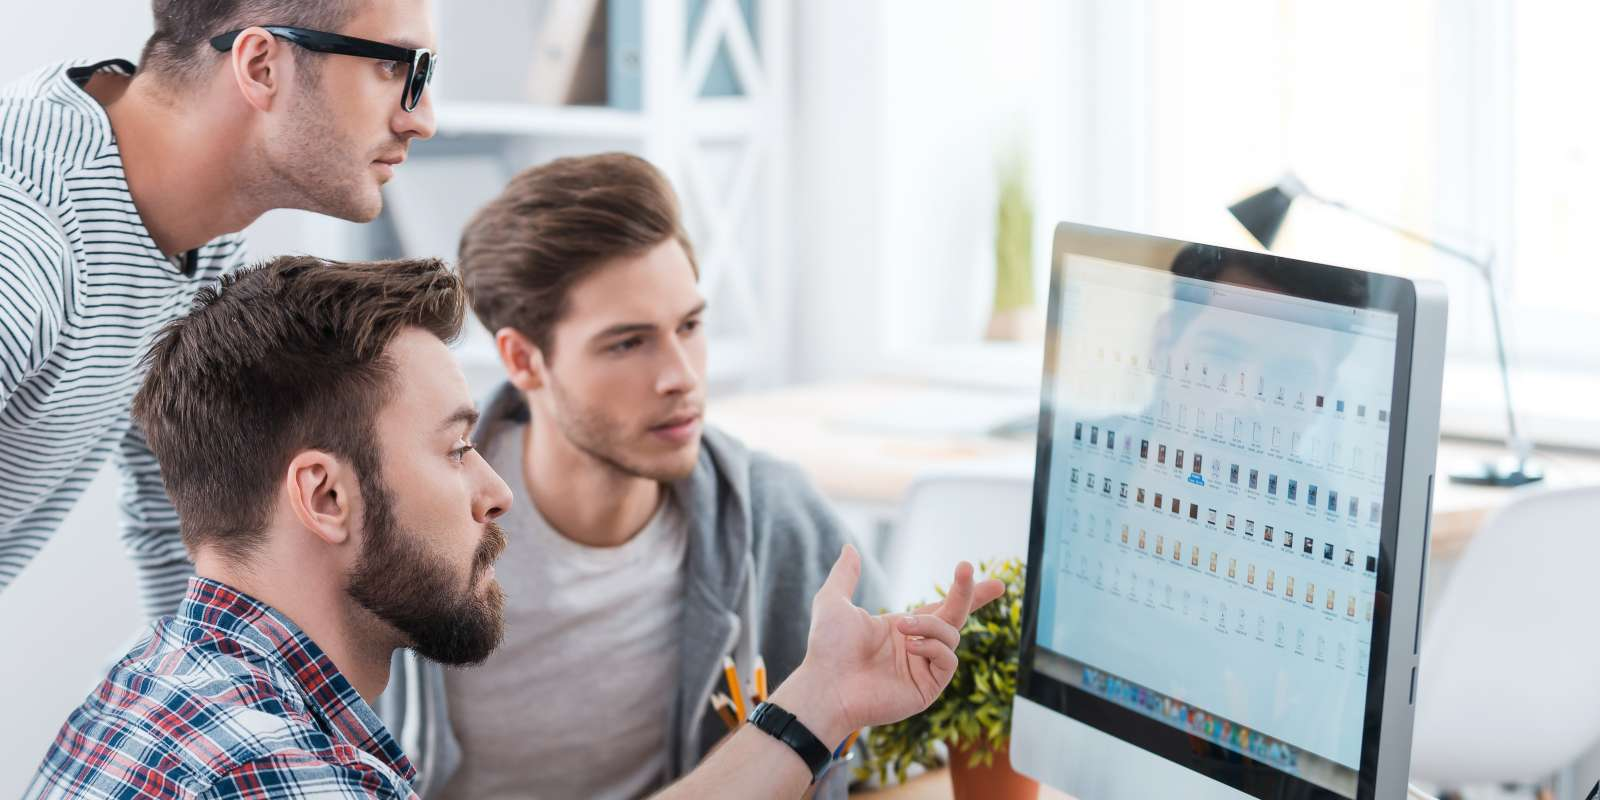 Developers Collaborating Around a Screen